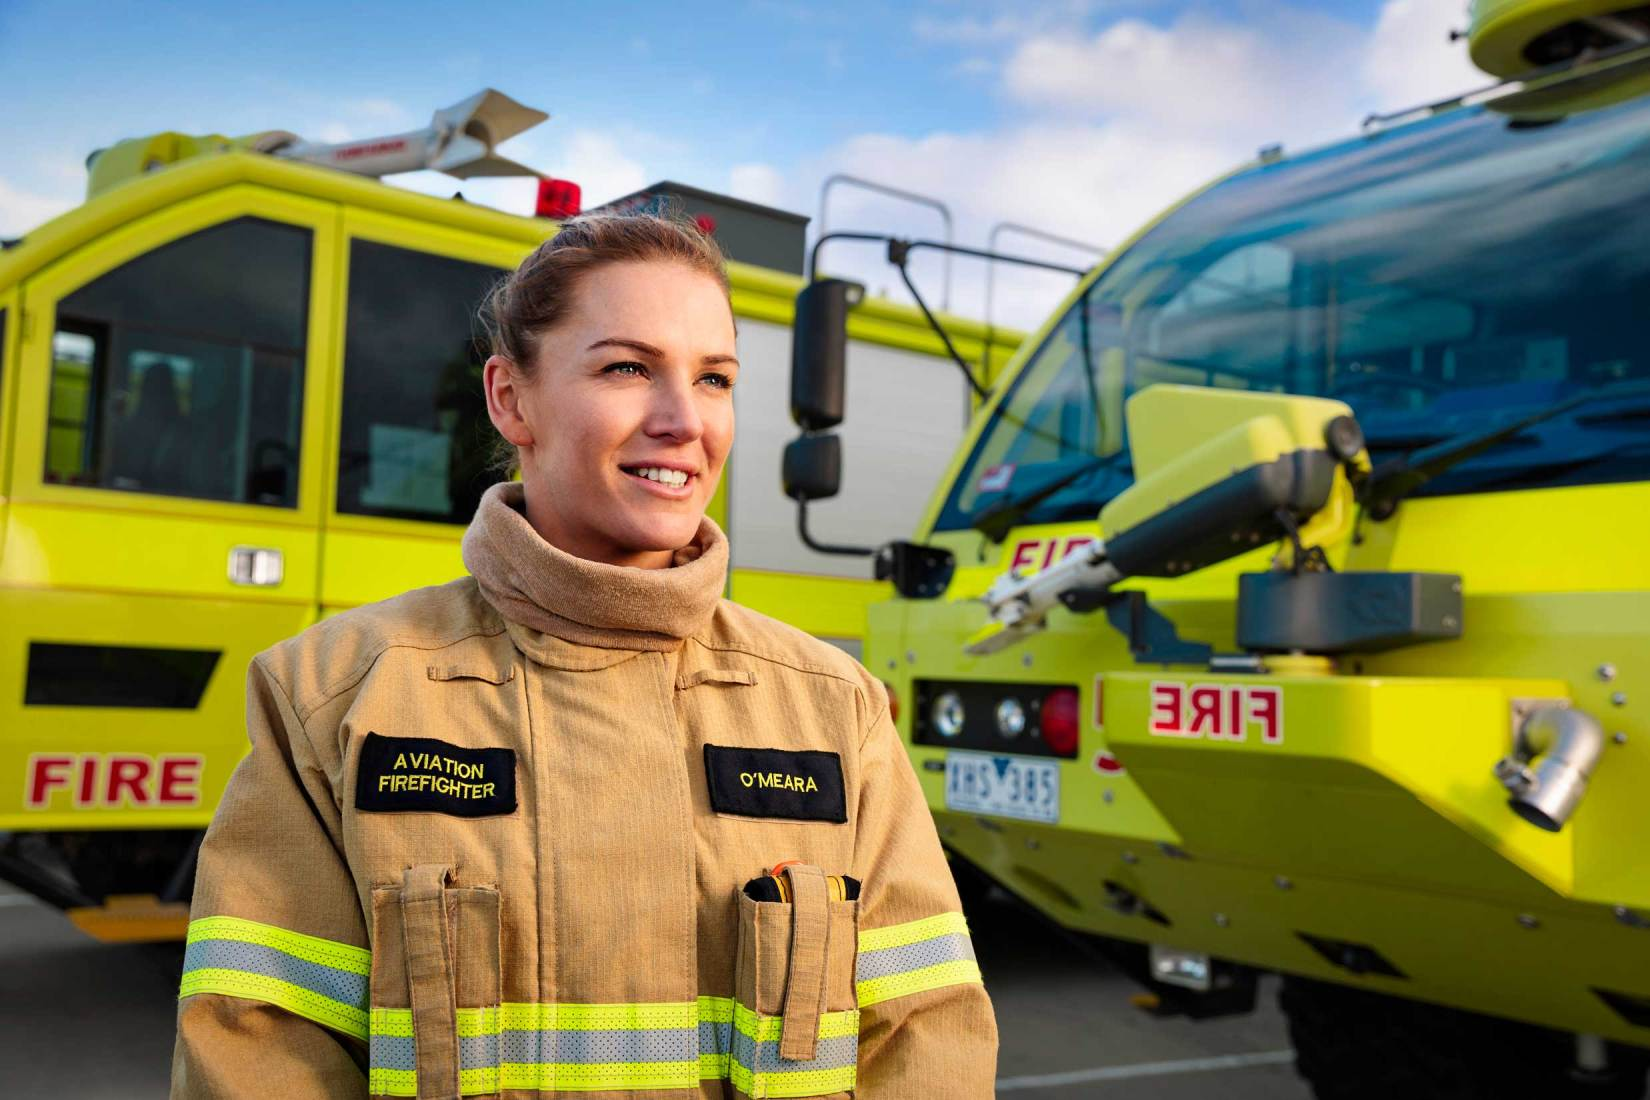 18106-3839-Image-Workshop-Melbourne-firefighter-fire-fighting-photography